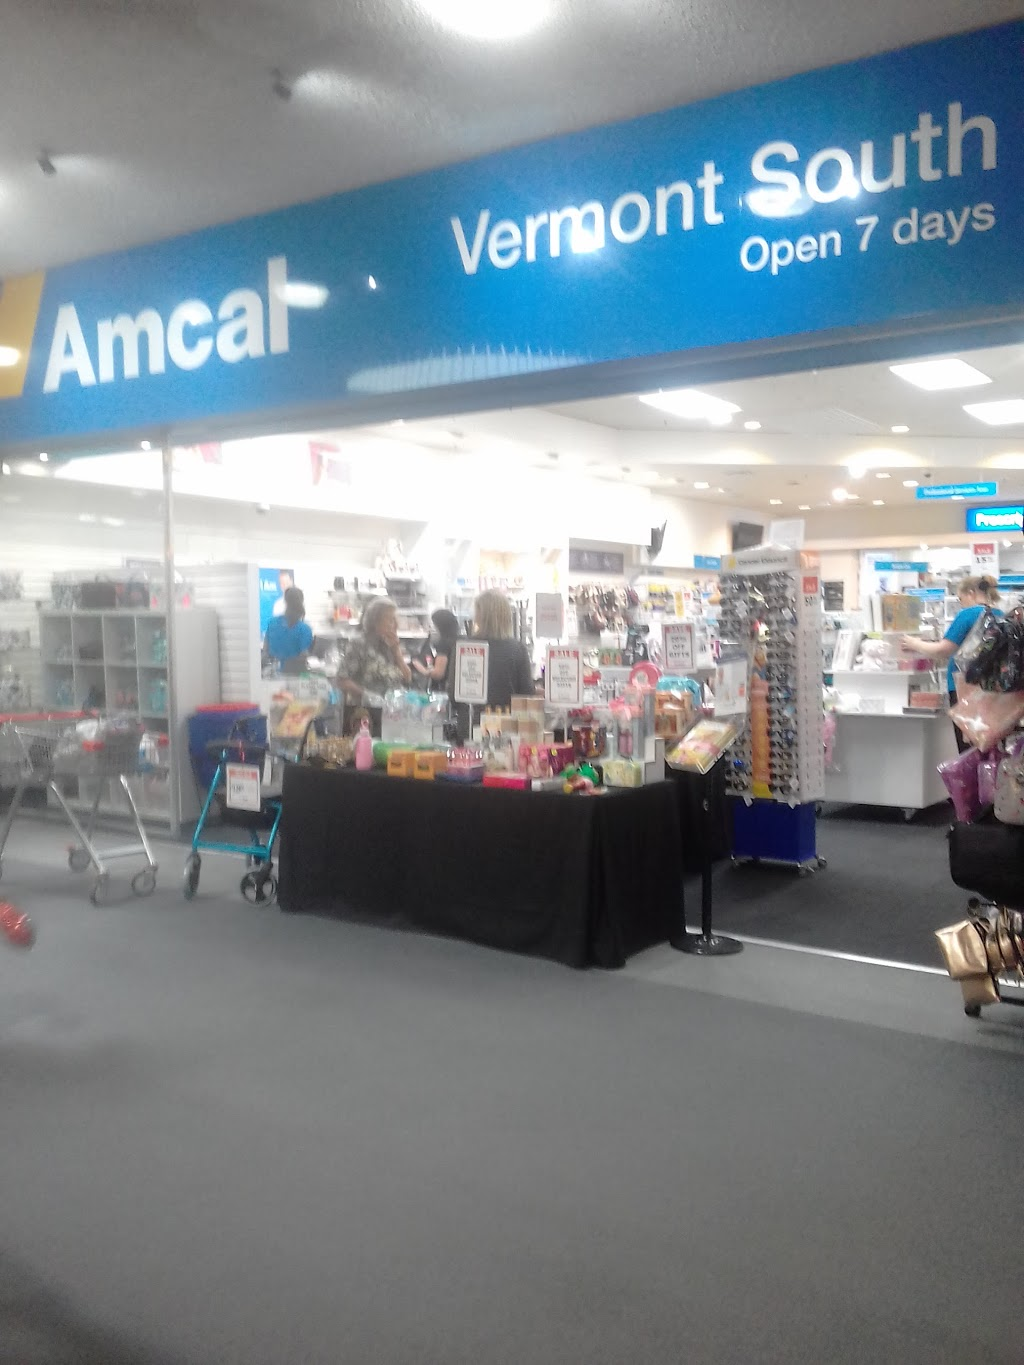 Vermont South Pharmacy | pharmacy | Vermont South Shopping Centre, 2A/495 Burwood Hwy, Vermont South VIC 3133, Australia | 0398034514 OR +61 3 9803 4514